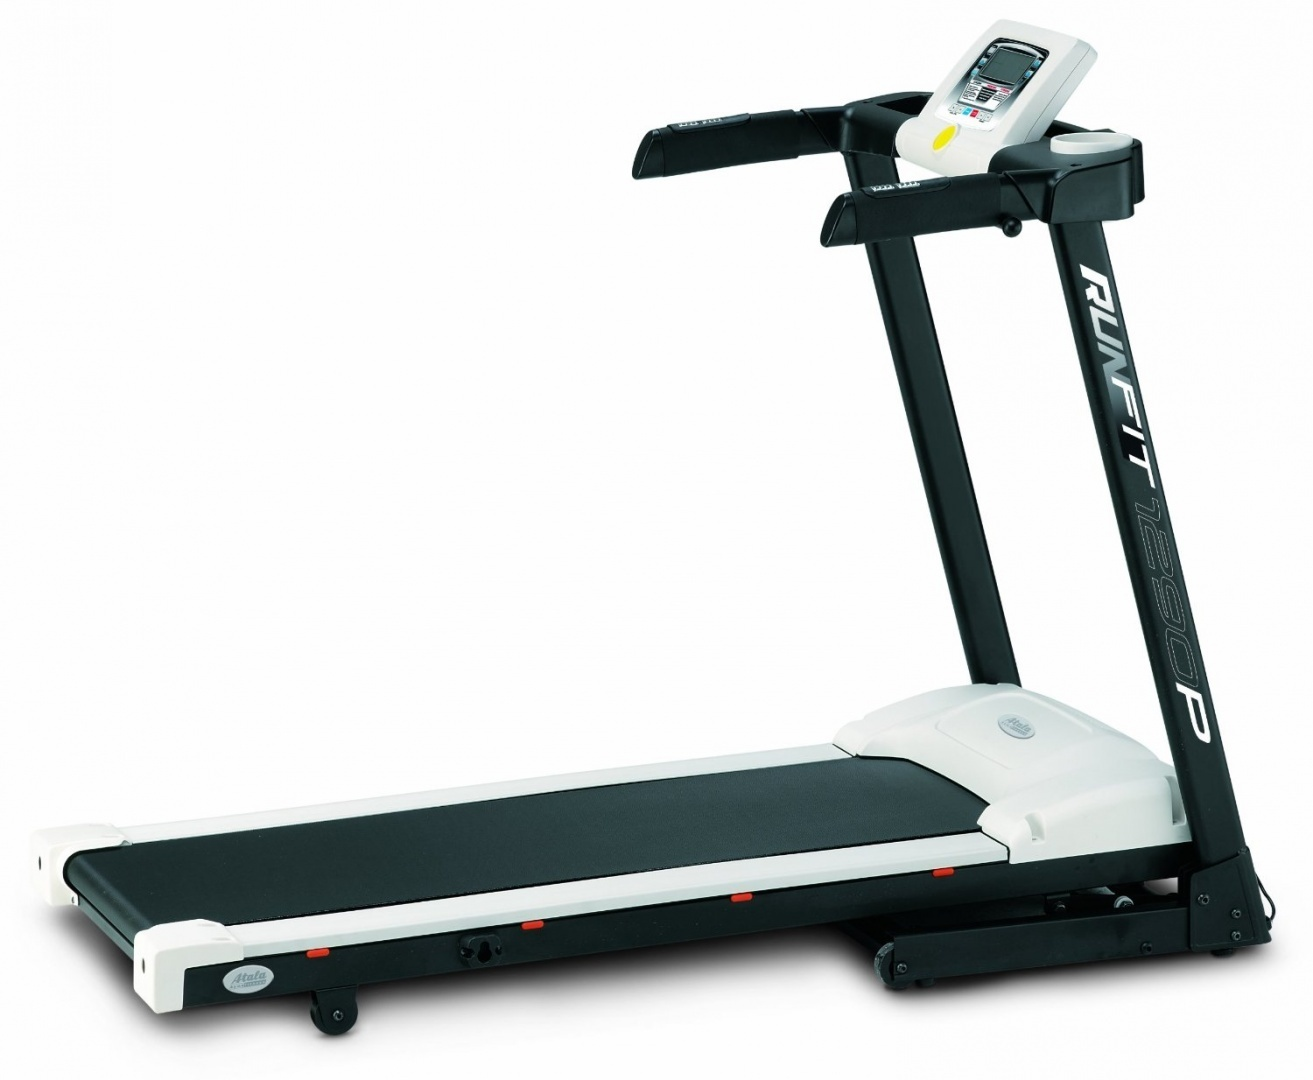 Atala Runfit 1290 Power Treadmill by Atala - Shop Online for ...